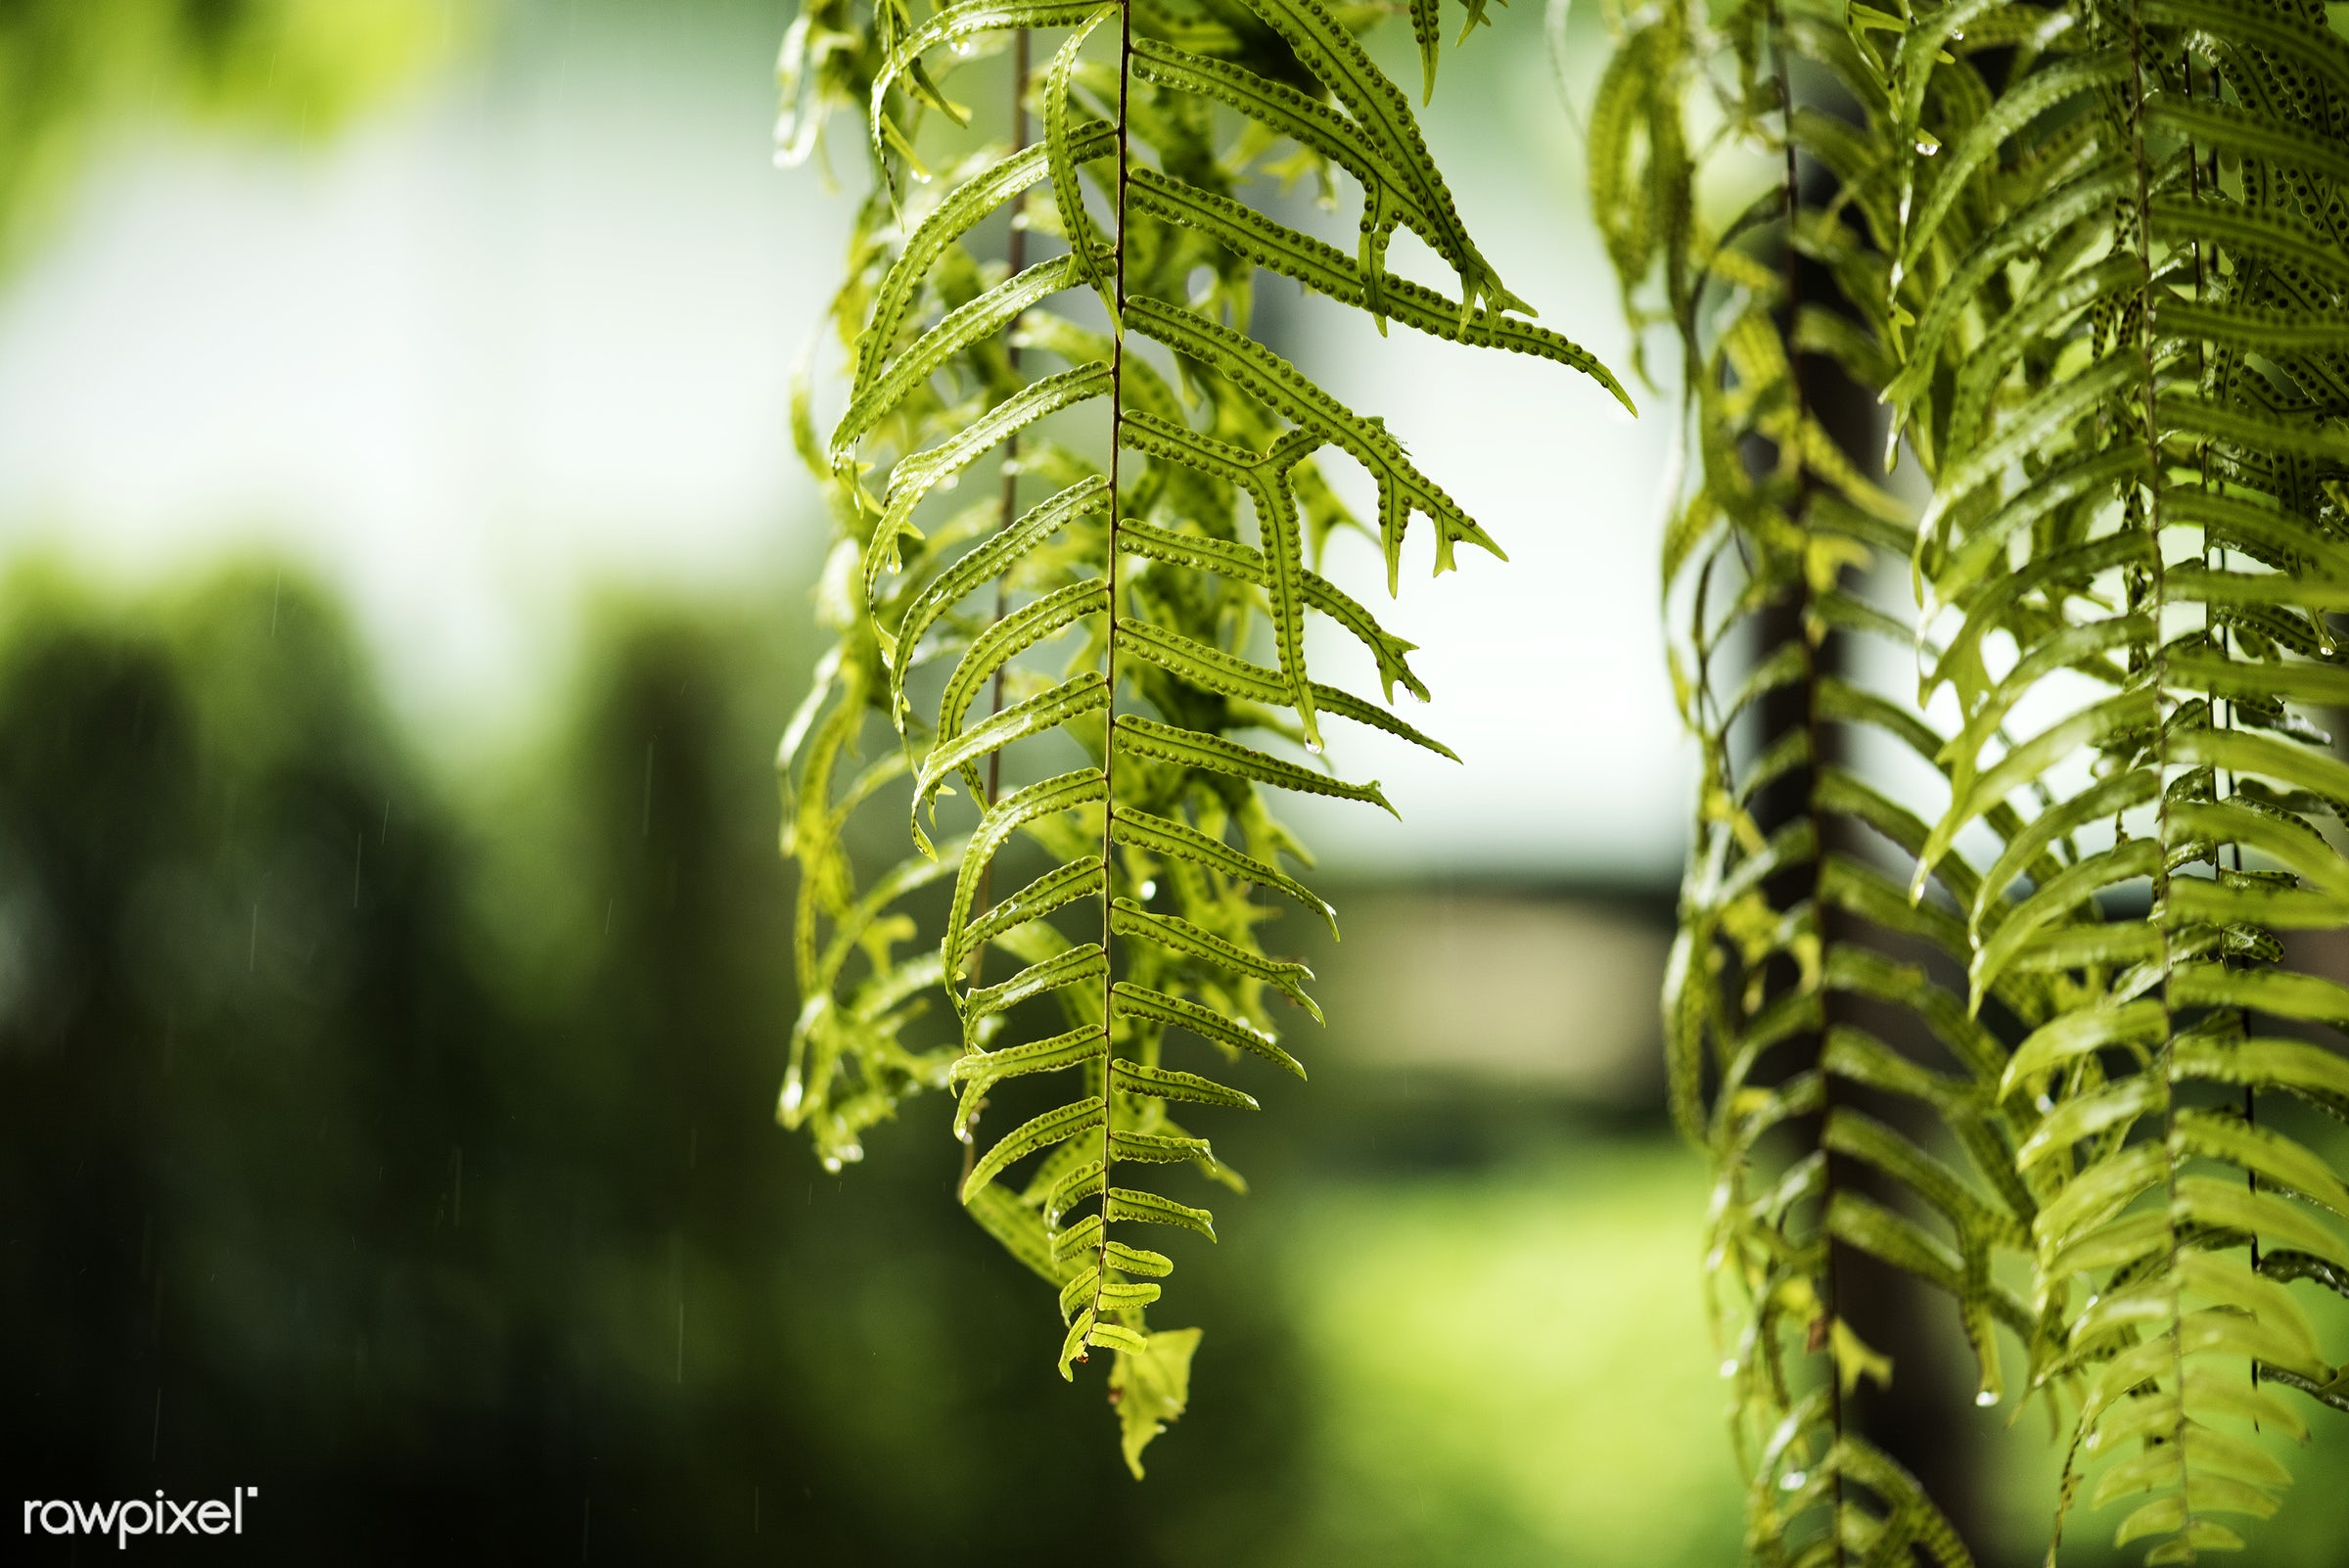 botany, green, plate, leaves, fern, real, nature, fresh, textured, natural, closeup